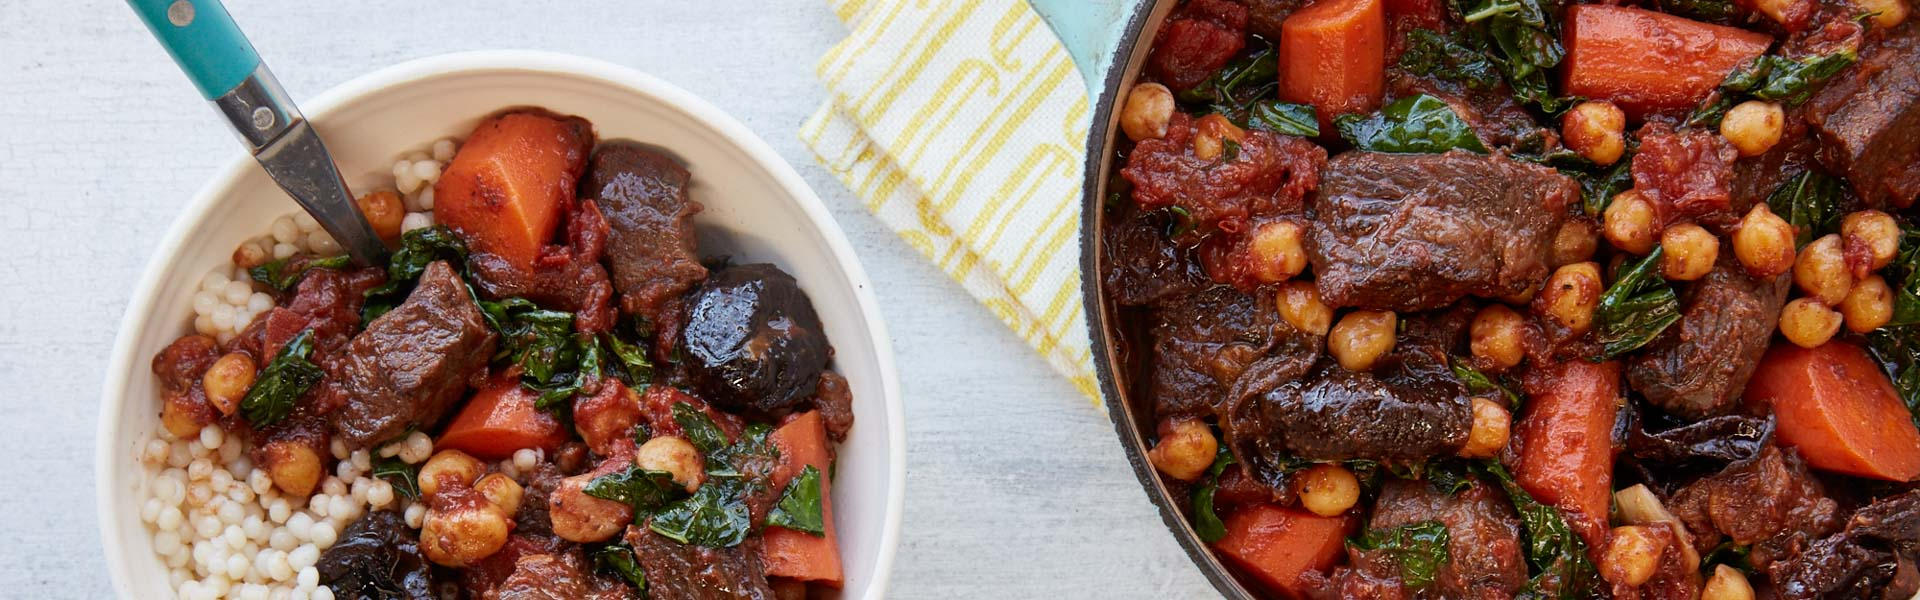 <p>Dried Plums, garam masala, and cinnamon add spice  to beef stew while chickpeas and kale balance the richness and make it a complete meal.</p>